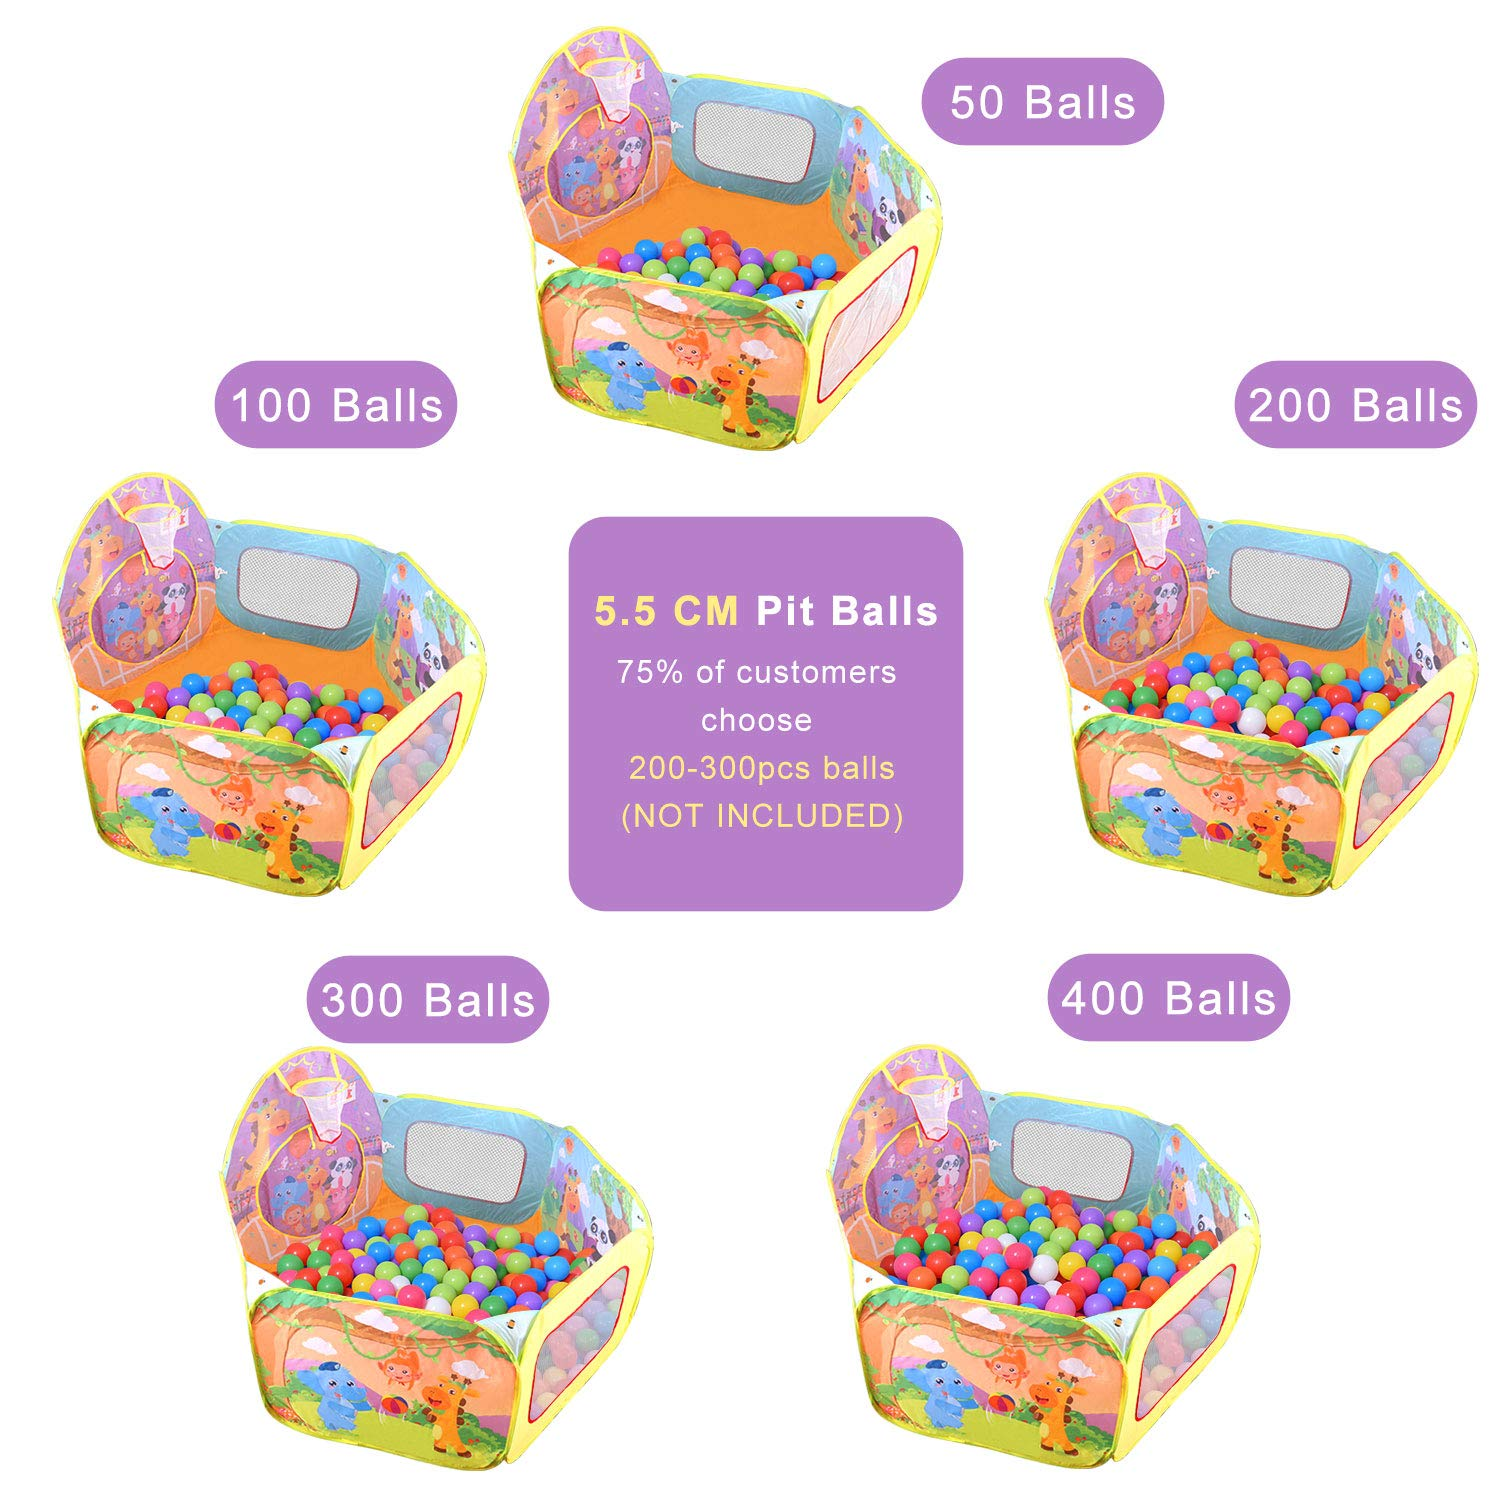 Children Ball Pool Baby Ball Pit Foldable Pool Tent Pop Up Indoor Outdoor Playhouse Baby Toddler with Zippered Storage Bag ICETEK Play Tent Kids Ball Pit Balls not Included